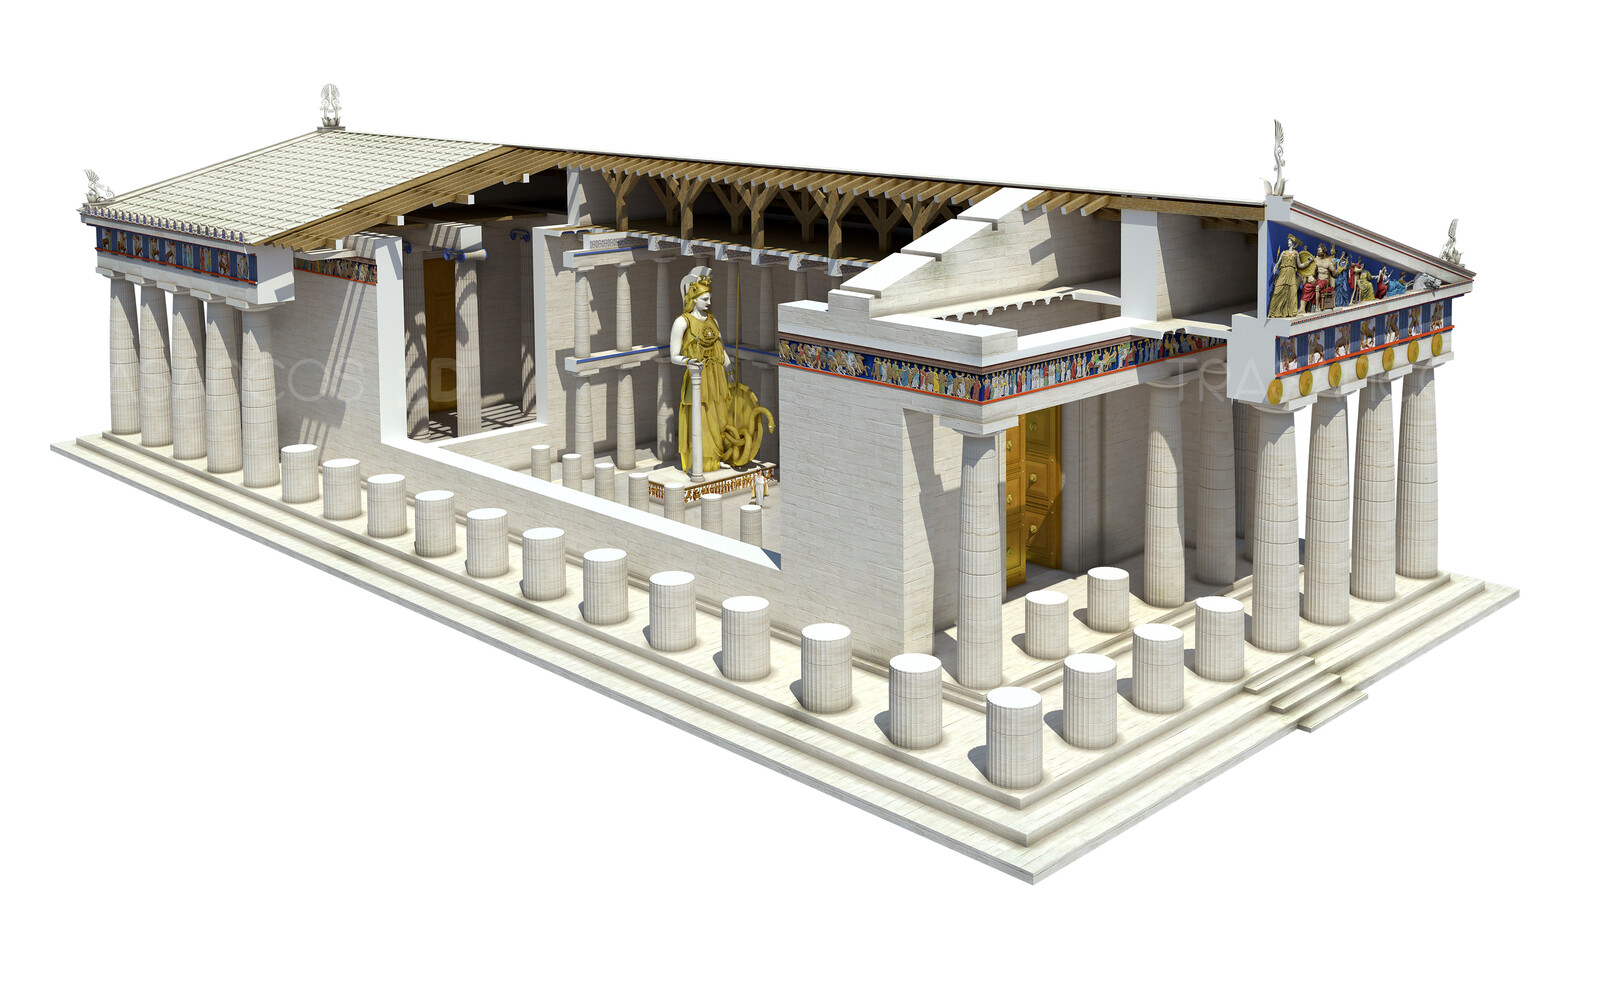 Cut away showing the interior of the Parthenon with the gold and ivory statue of Athena.